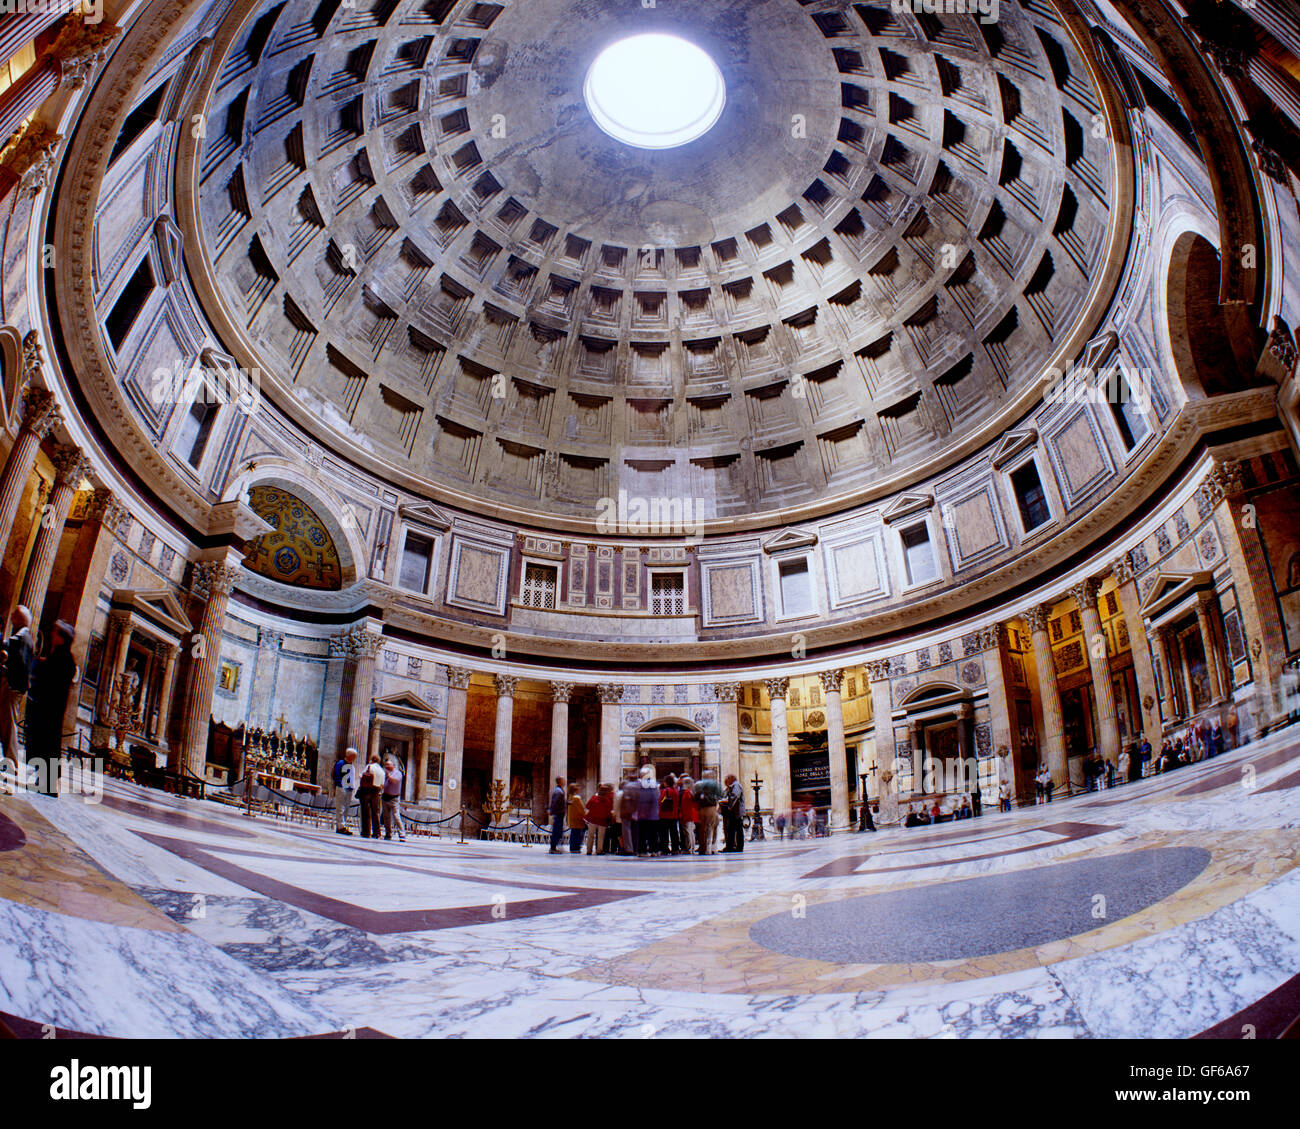 Interior of the Pantheon, Rome, Italy - Stock Image